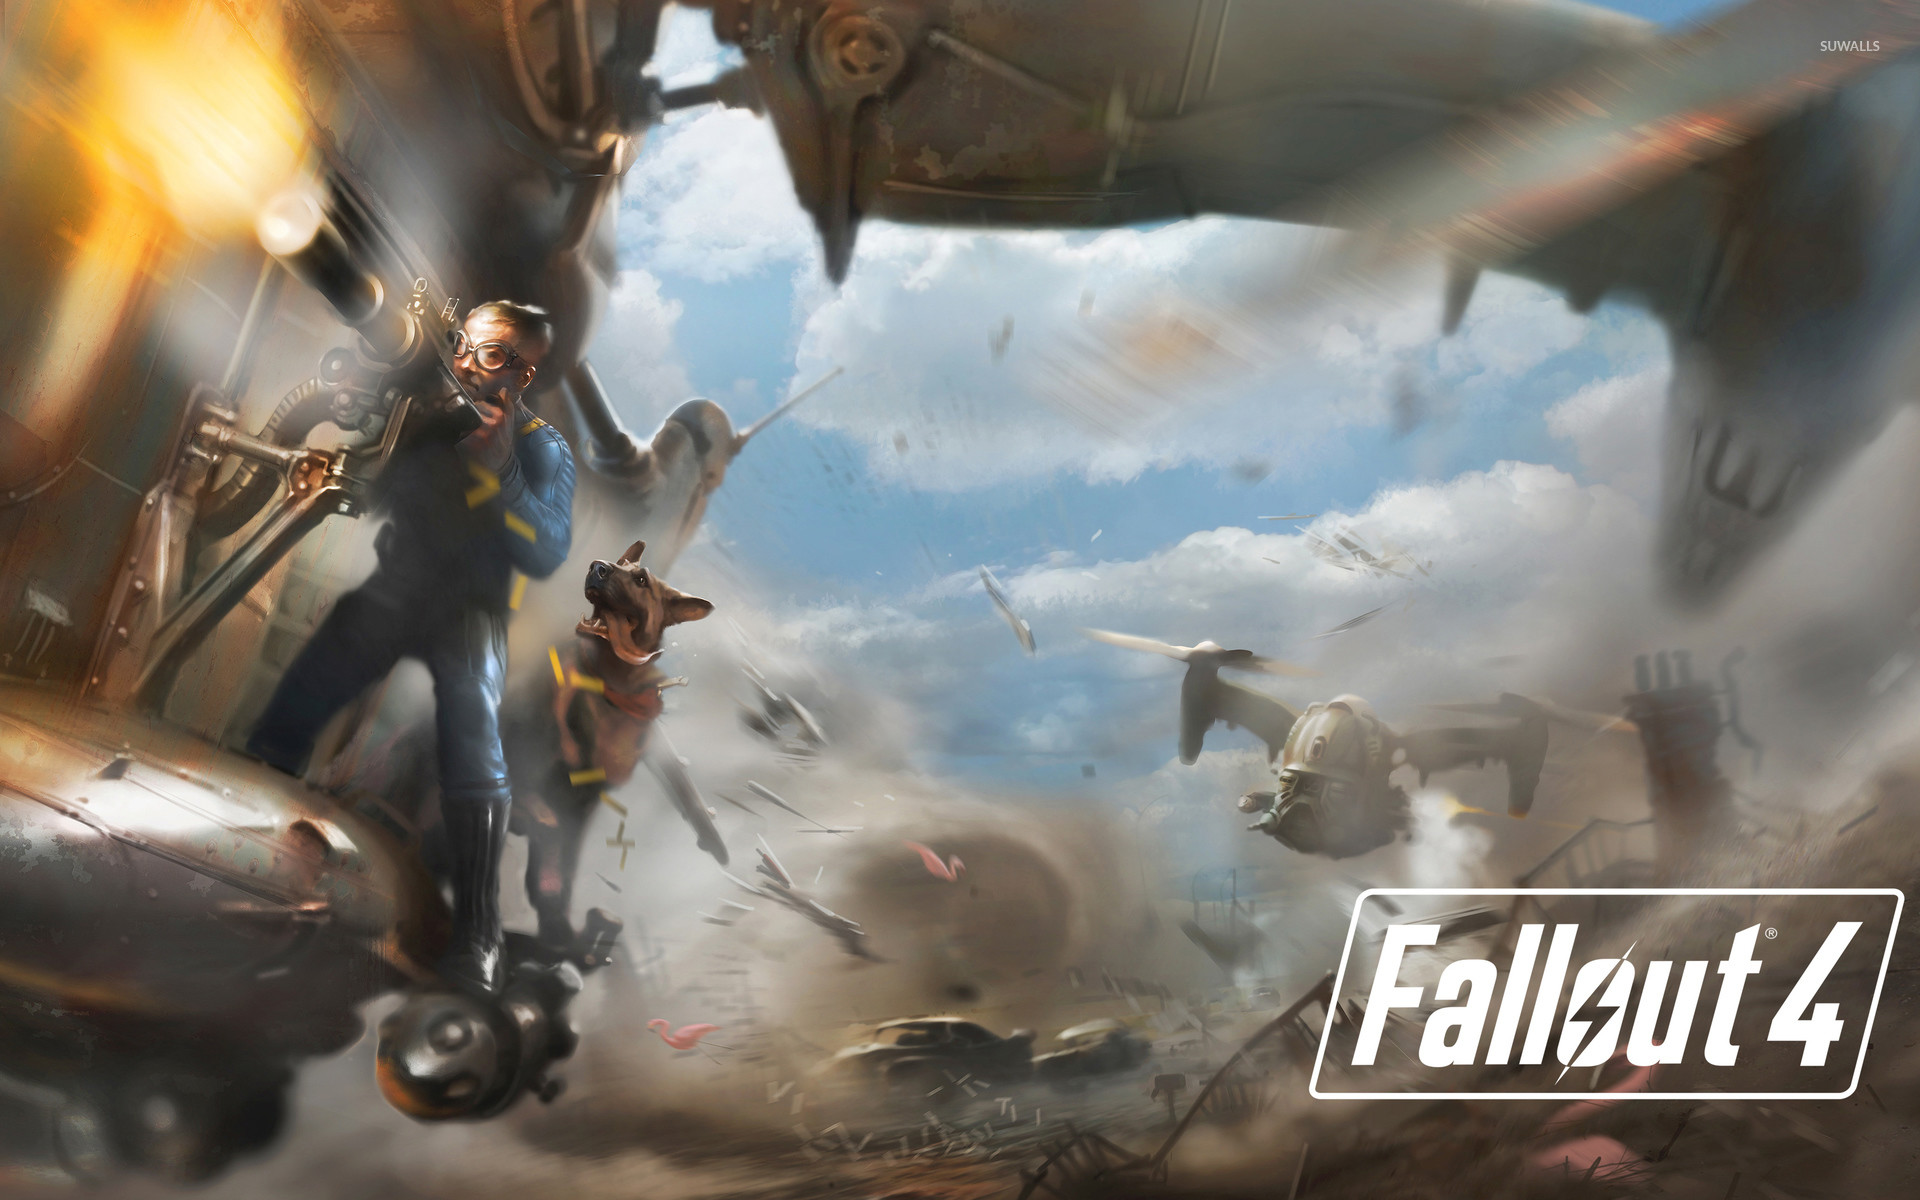 Battle in Fallout 4 wallpaper – Game wallpapers – #49539